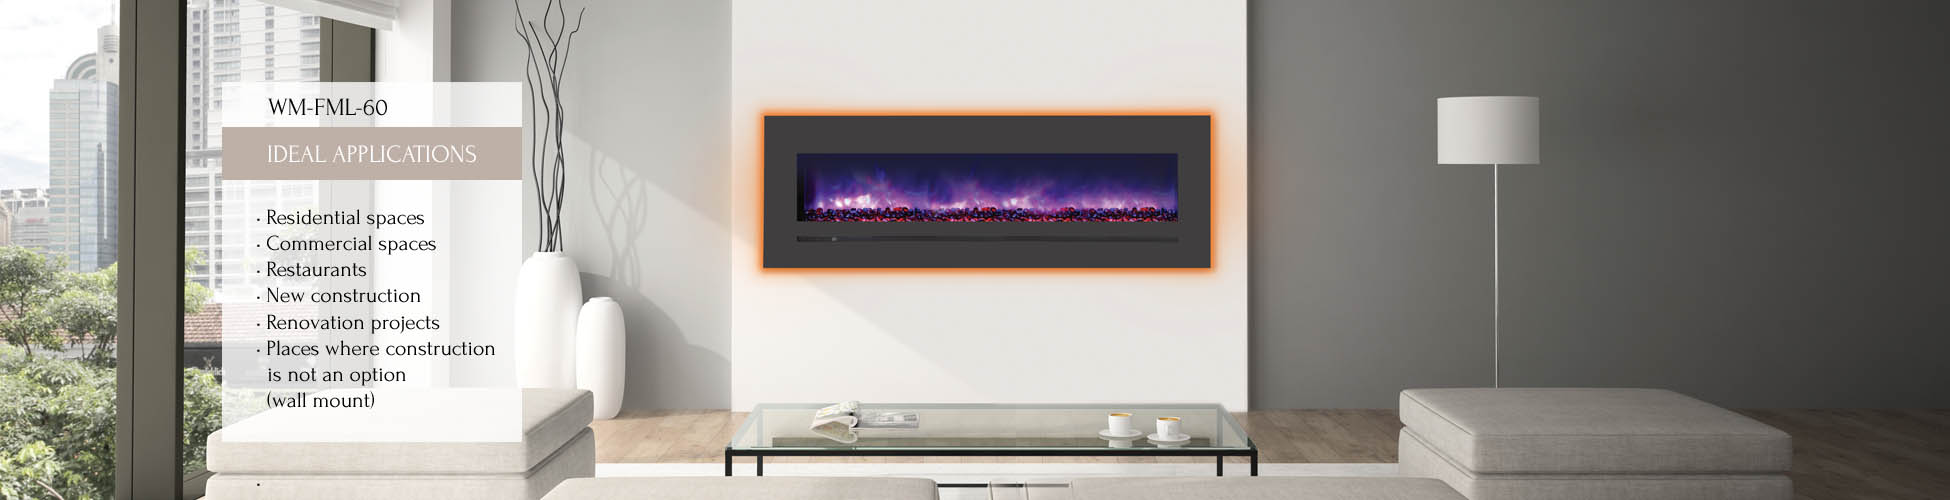 WM-FML electric fireplace by Sierra Flame